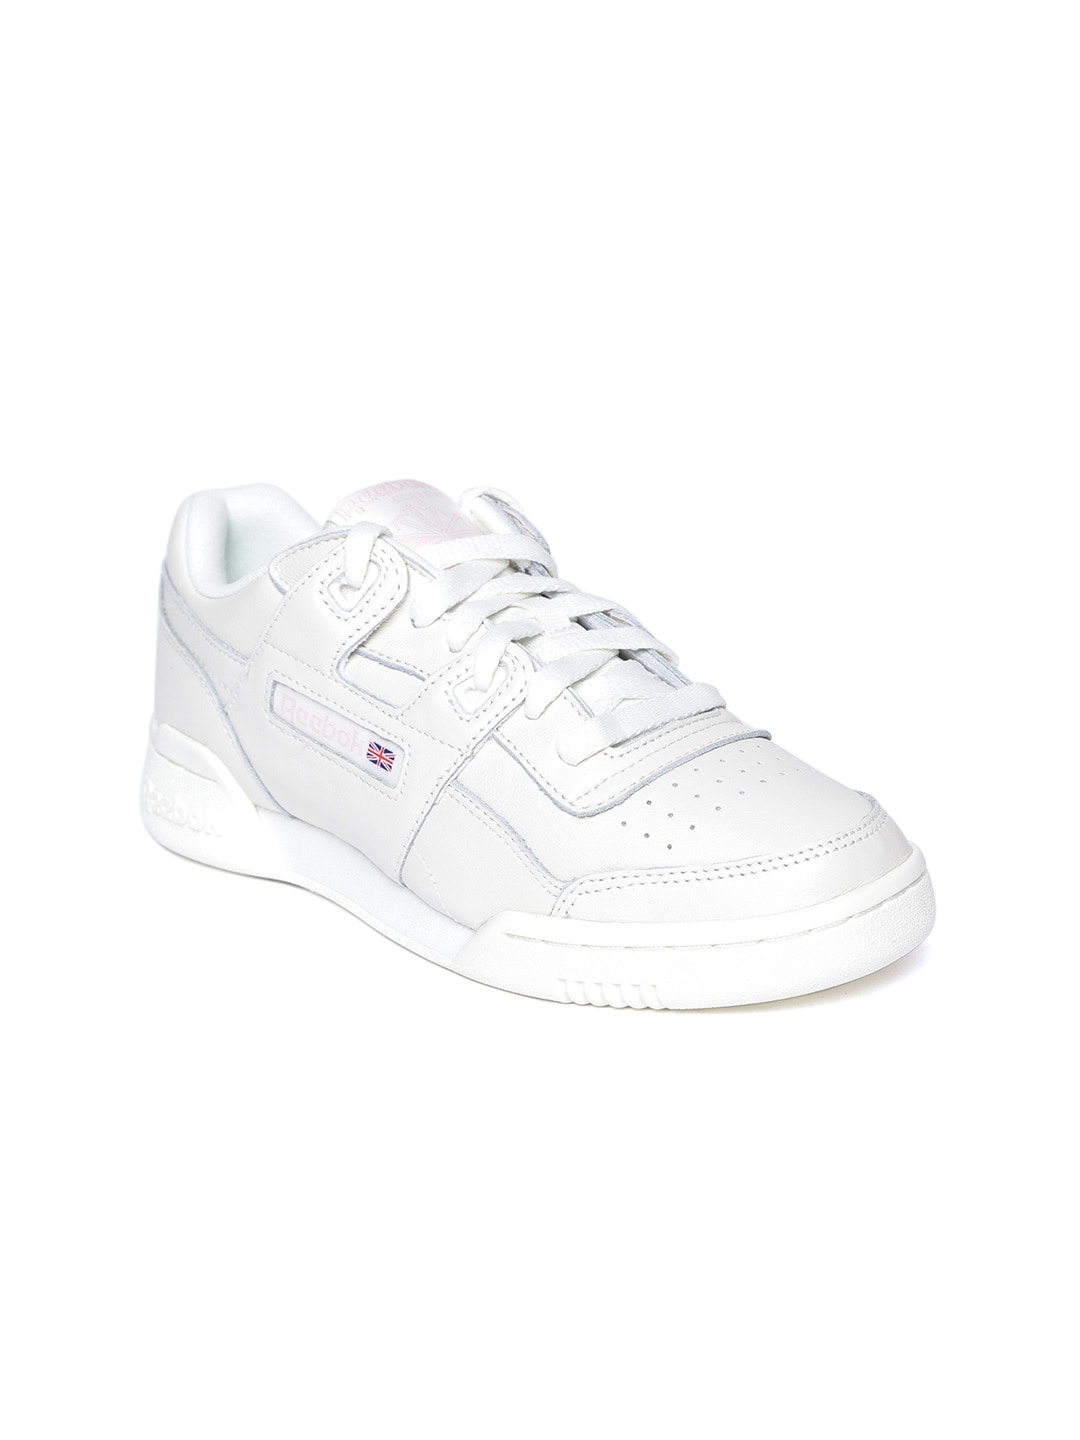 3e9ccd88aa0ed Reebok Sports Footwear - Buy Reebok Sports Footwear Online in India